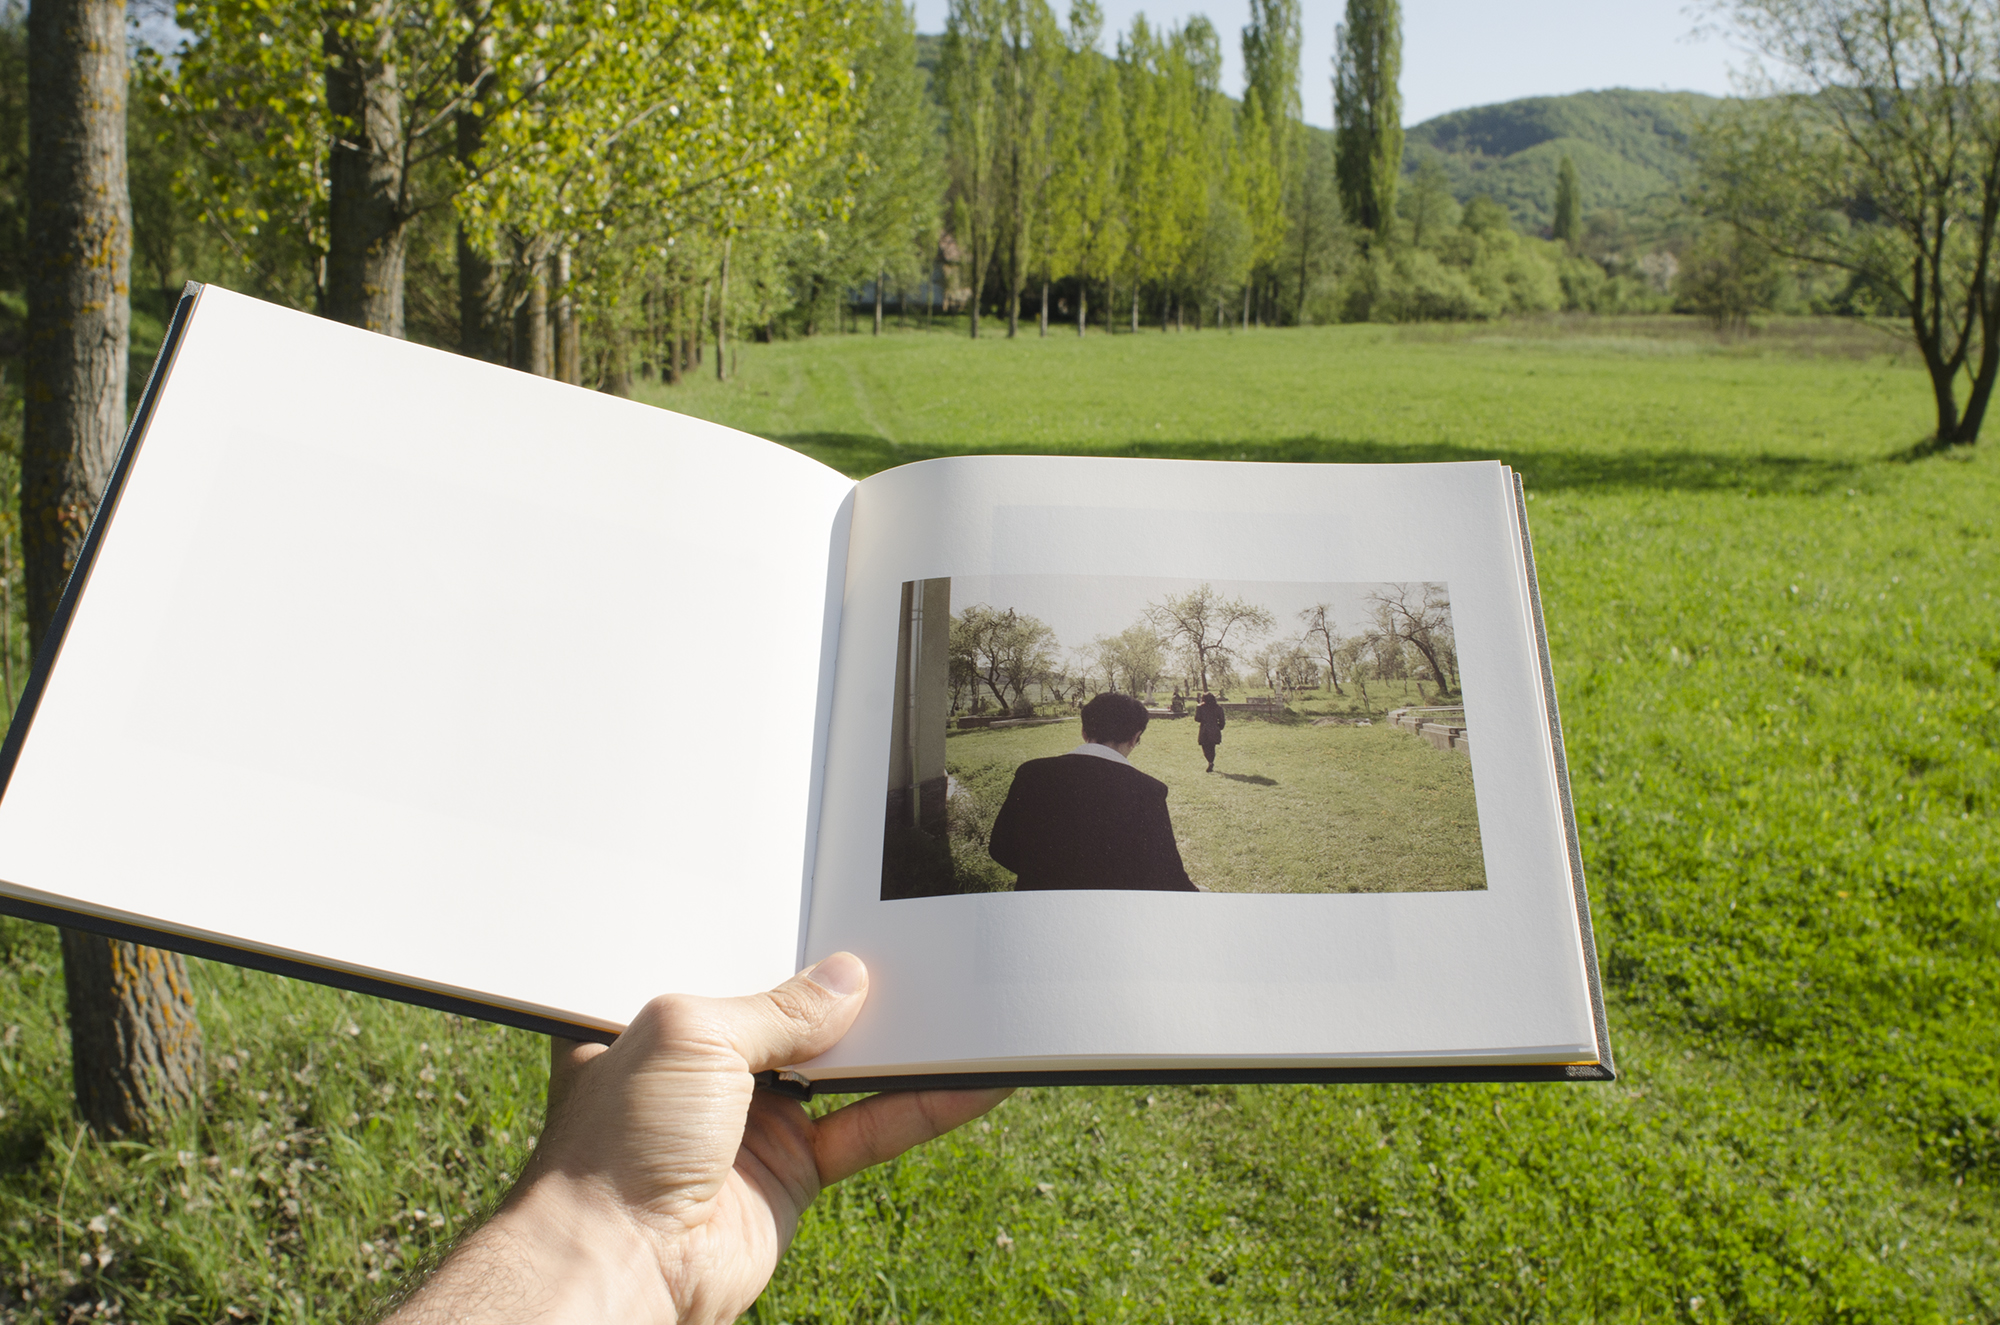 Photobook+Familiar+Place+by+artist+Ovidiu+Gordan002.jpg